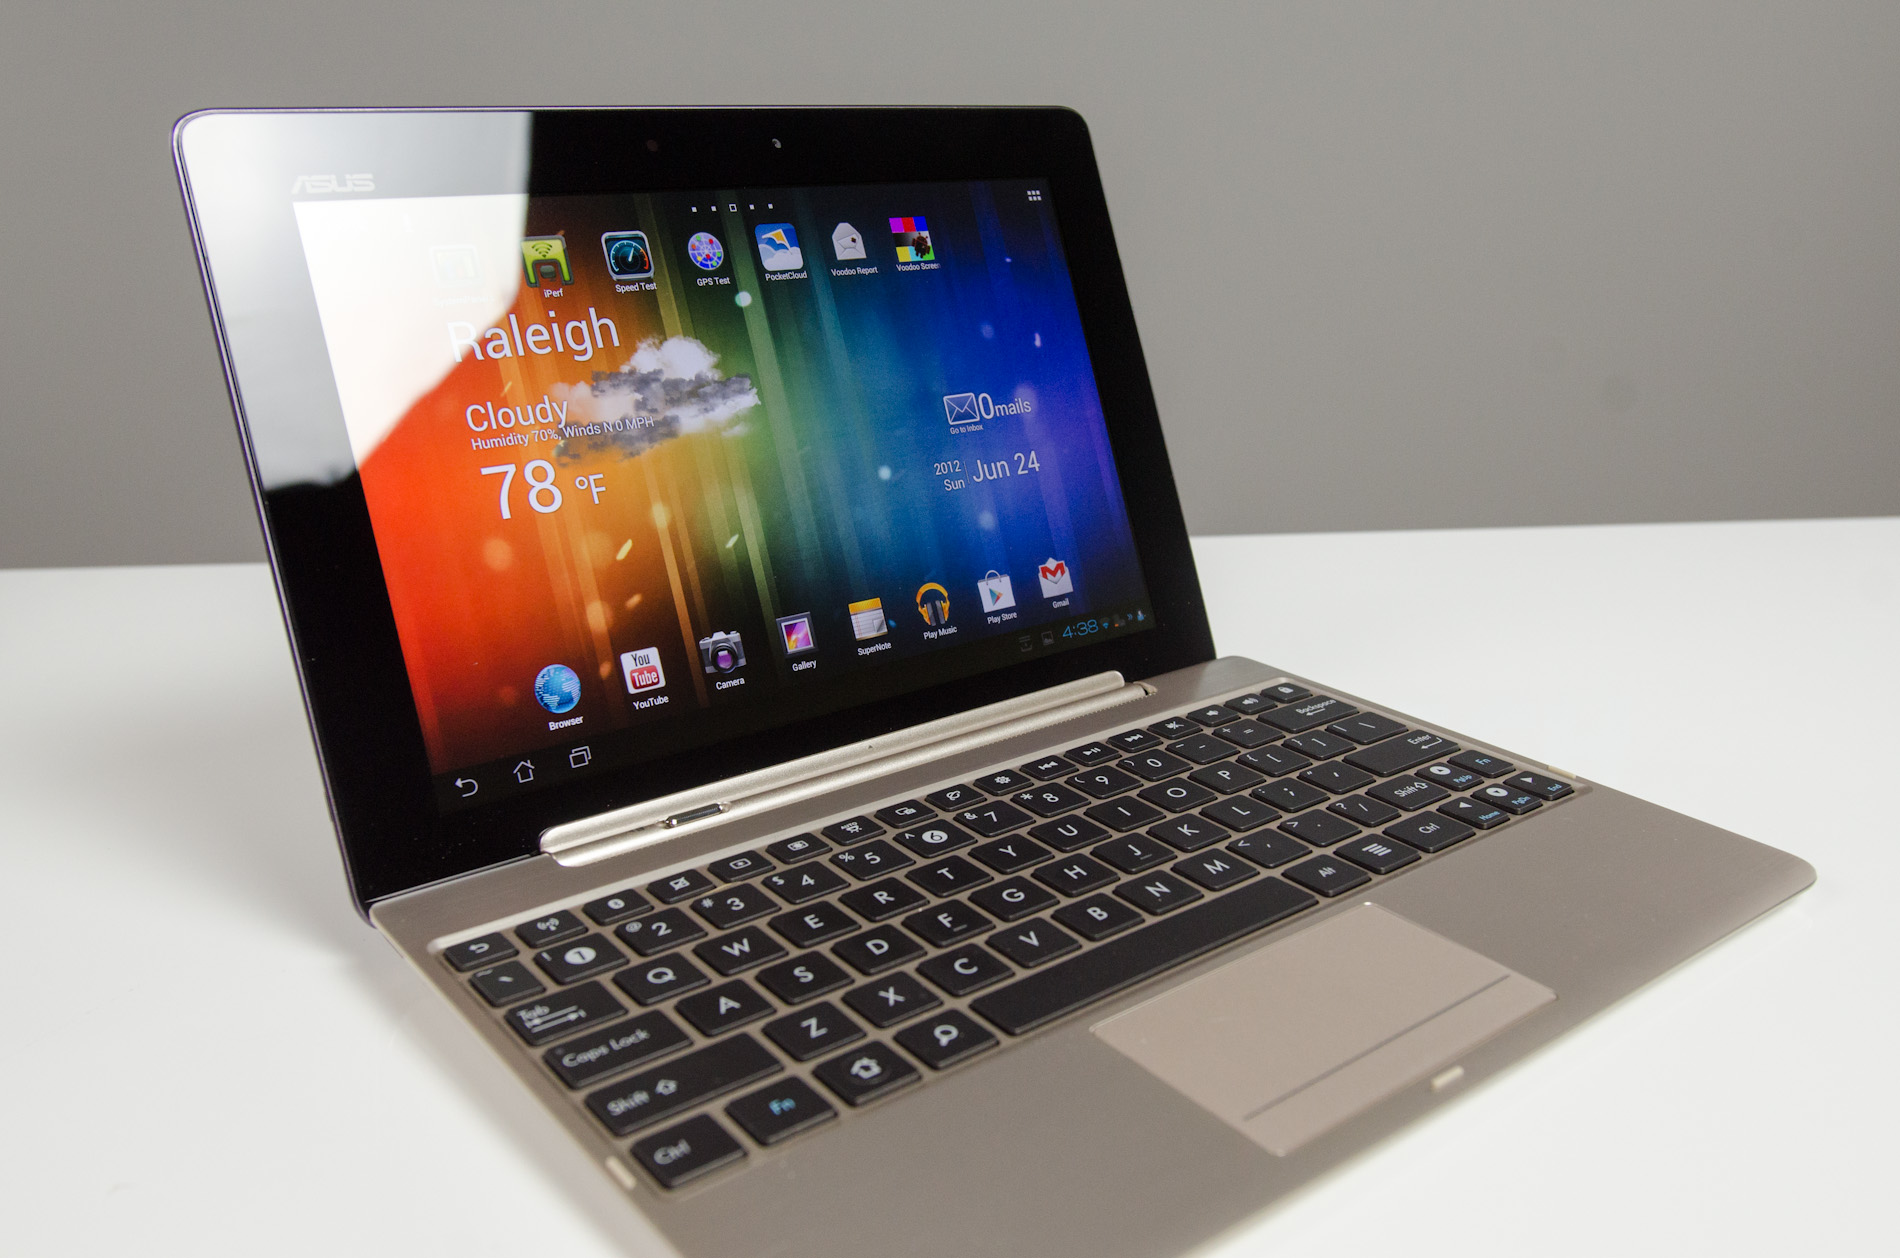 Final Words - ASUS Transformer Pad Infinity (TF700T) Review